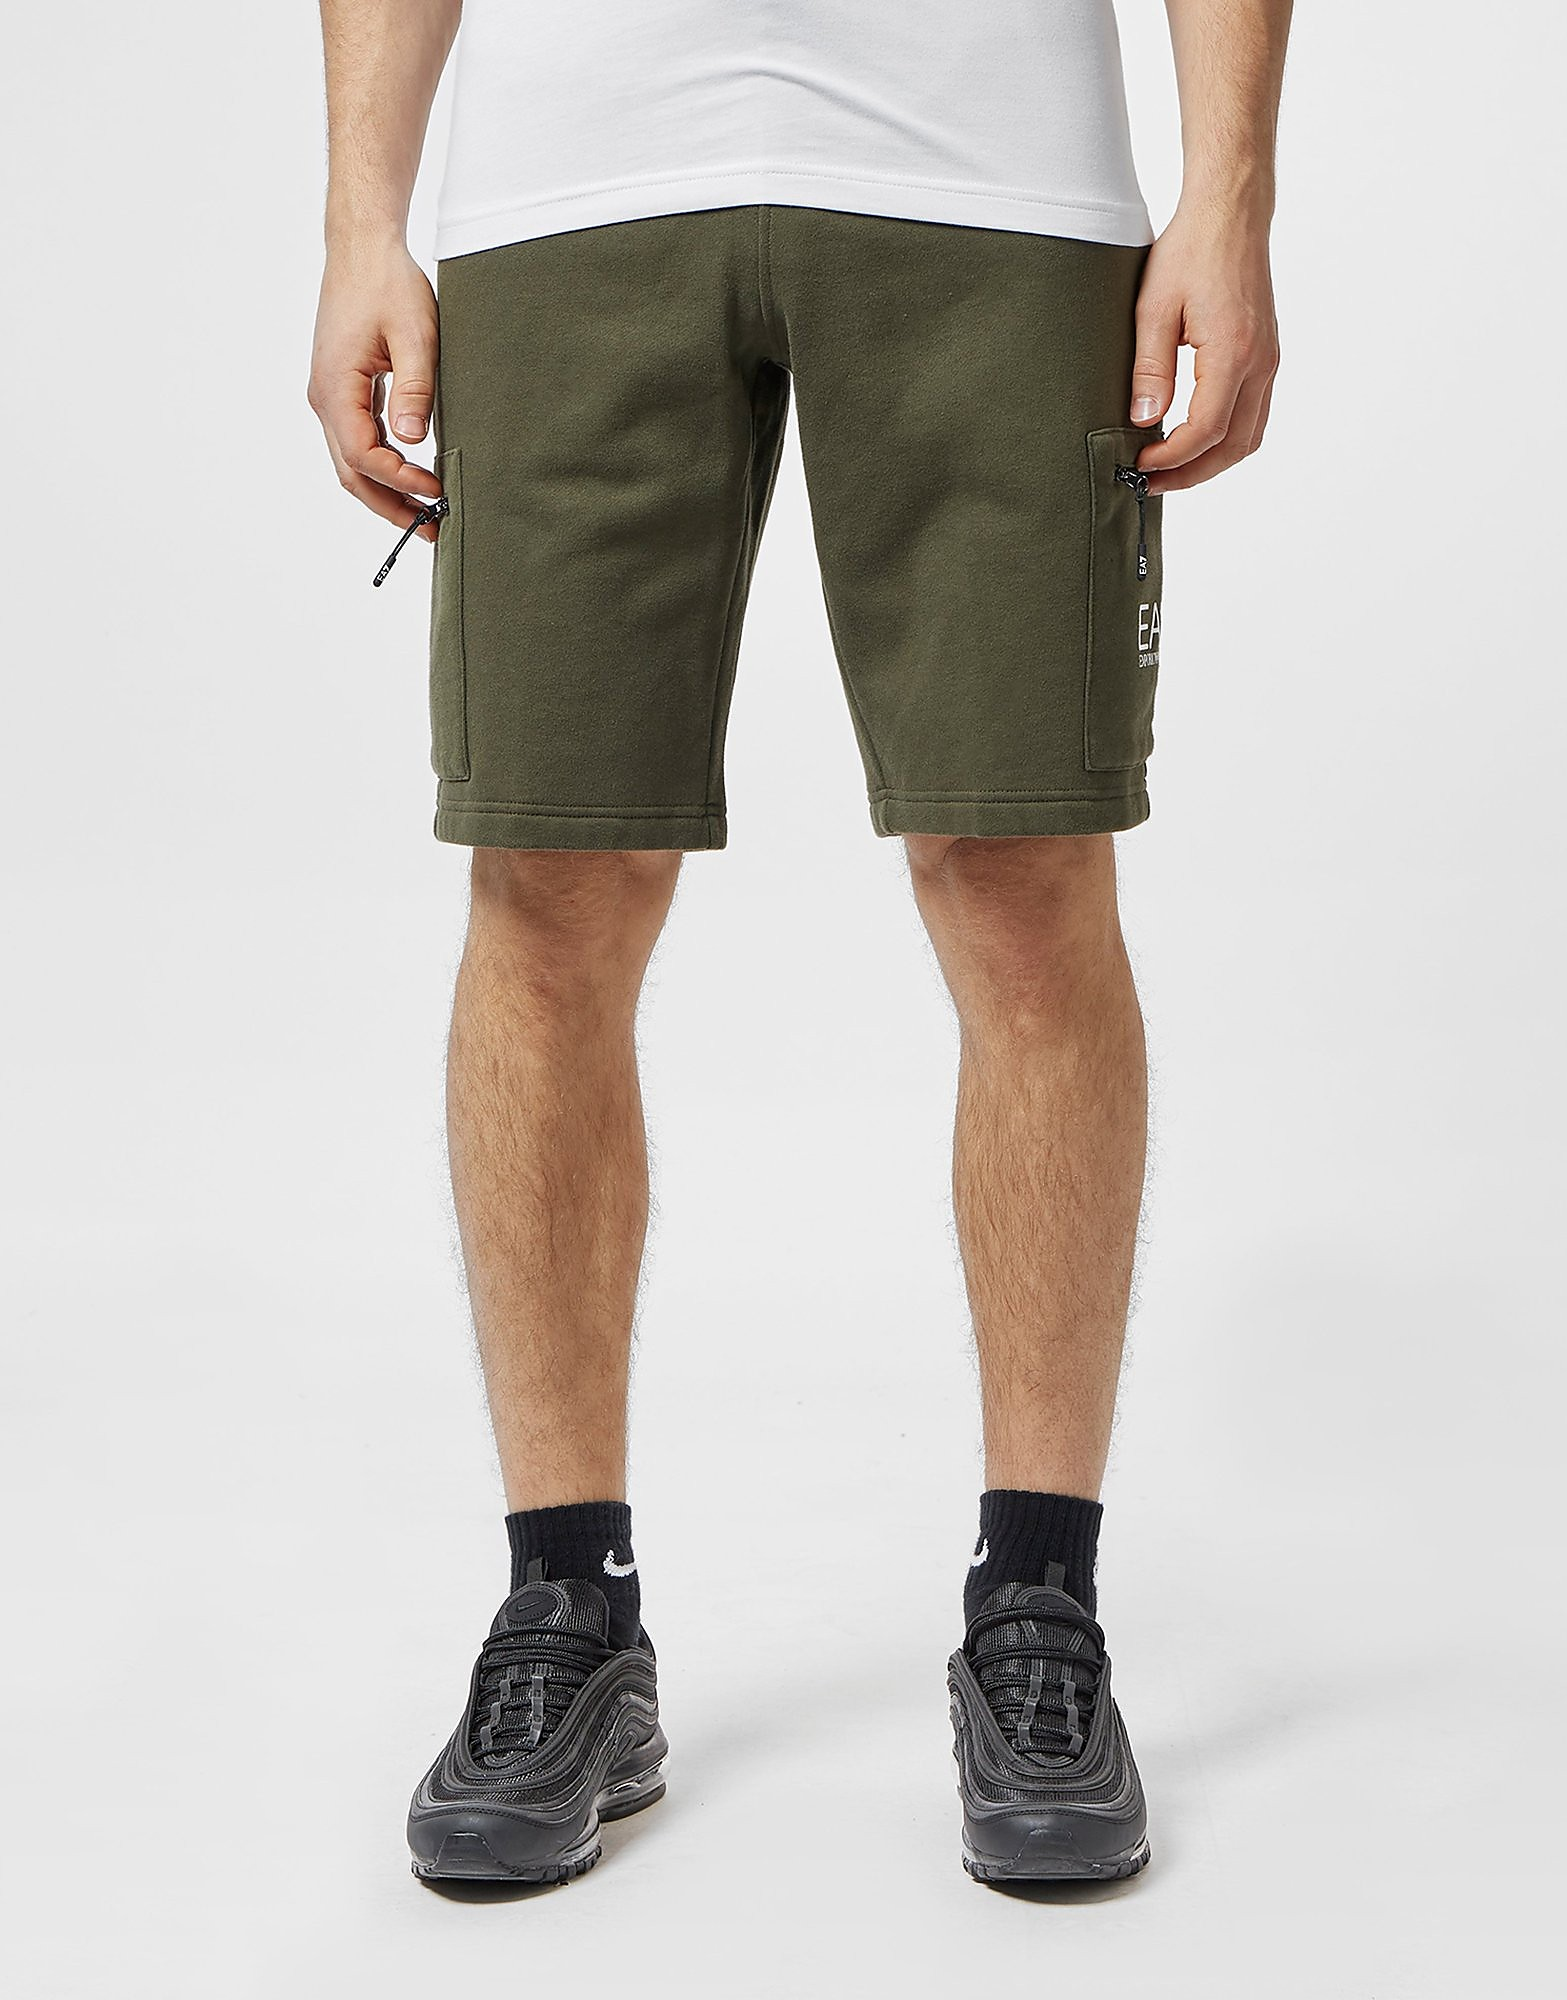 Emporio Armani EA7 Logo Fleece Shorts - Exclusive